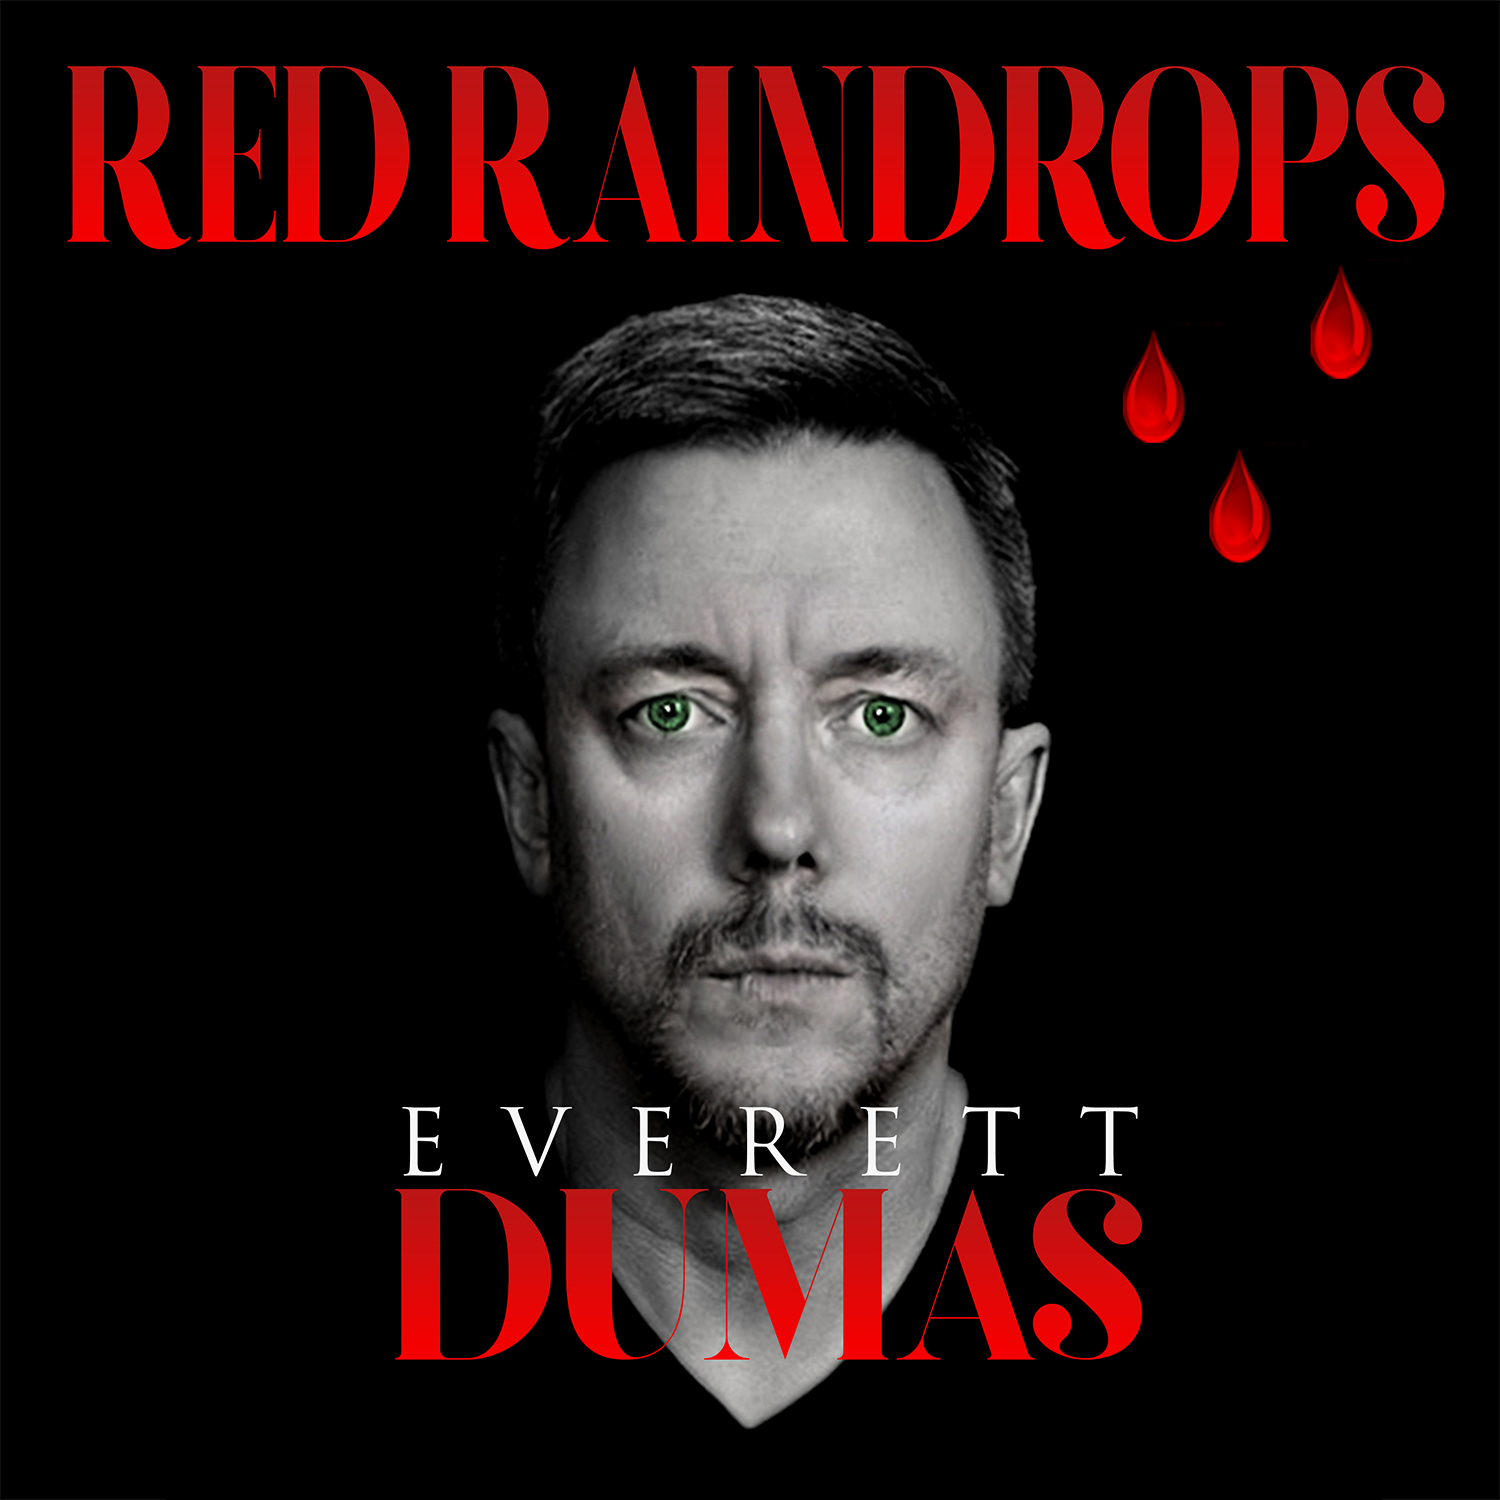 Everett Dumas launches 'Red Raindrops' album